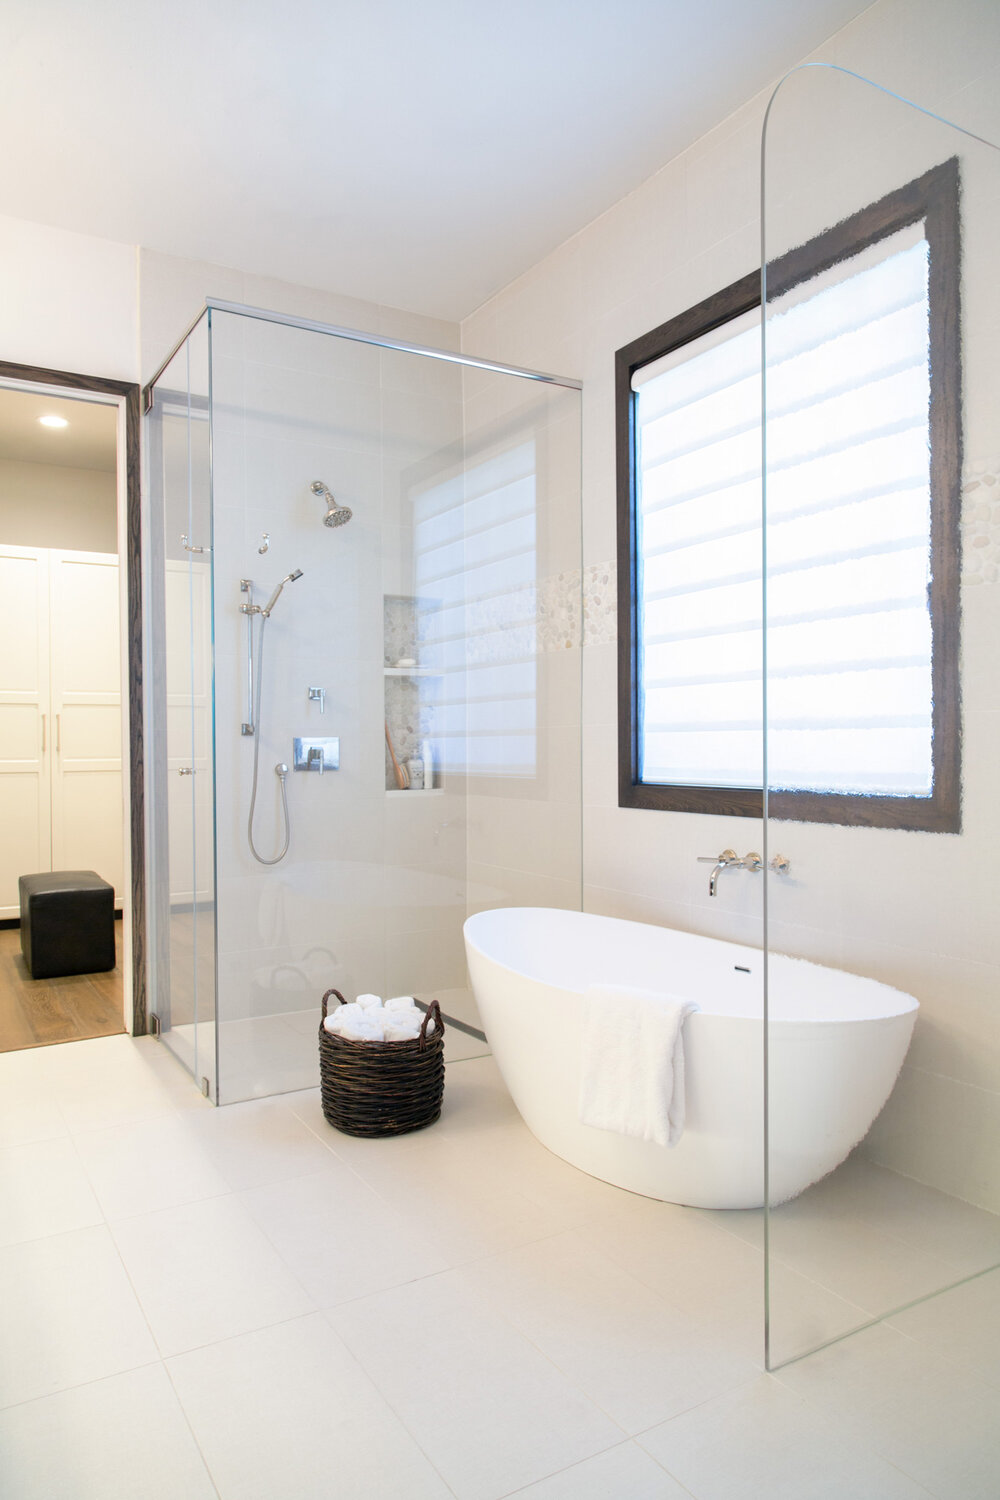 A free standing tub takes up less visual space than a built-in tub with a deck and is often why I recommend them for smaller bathrooms where more space is desired. Carla Aston, Designer | Tori Aston, Photographer